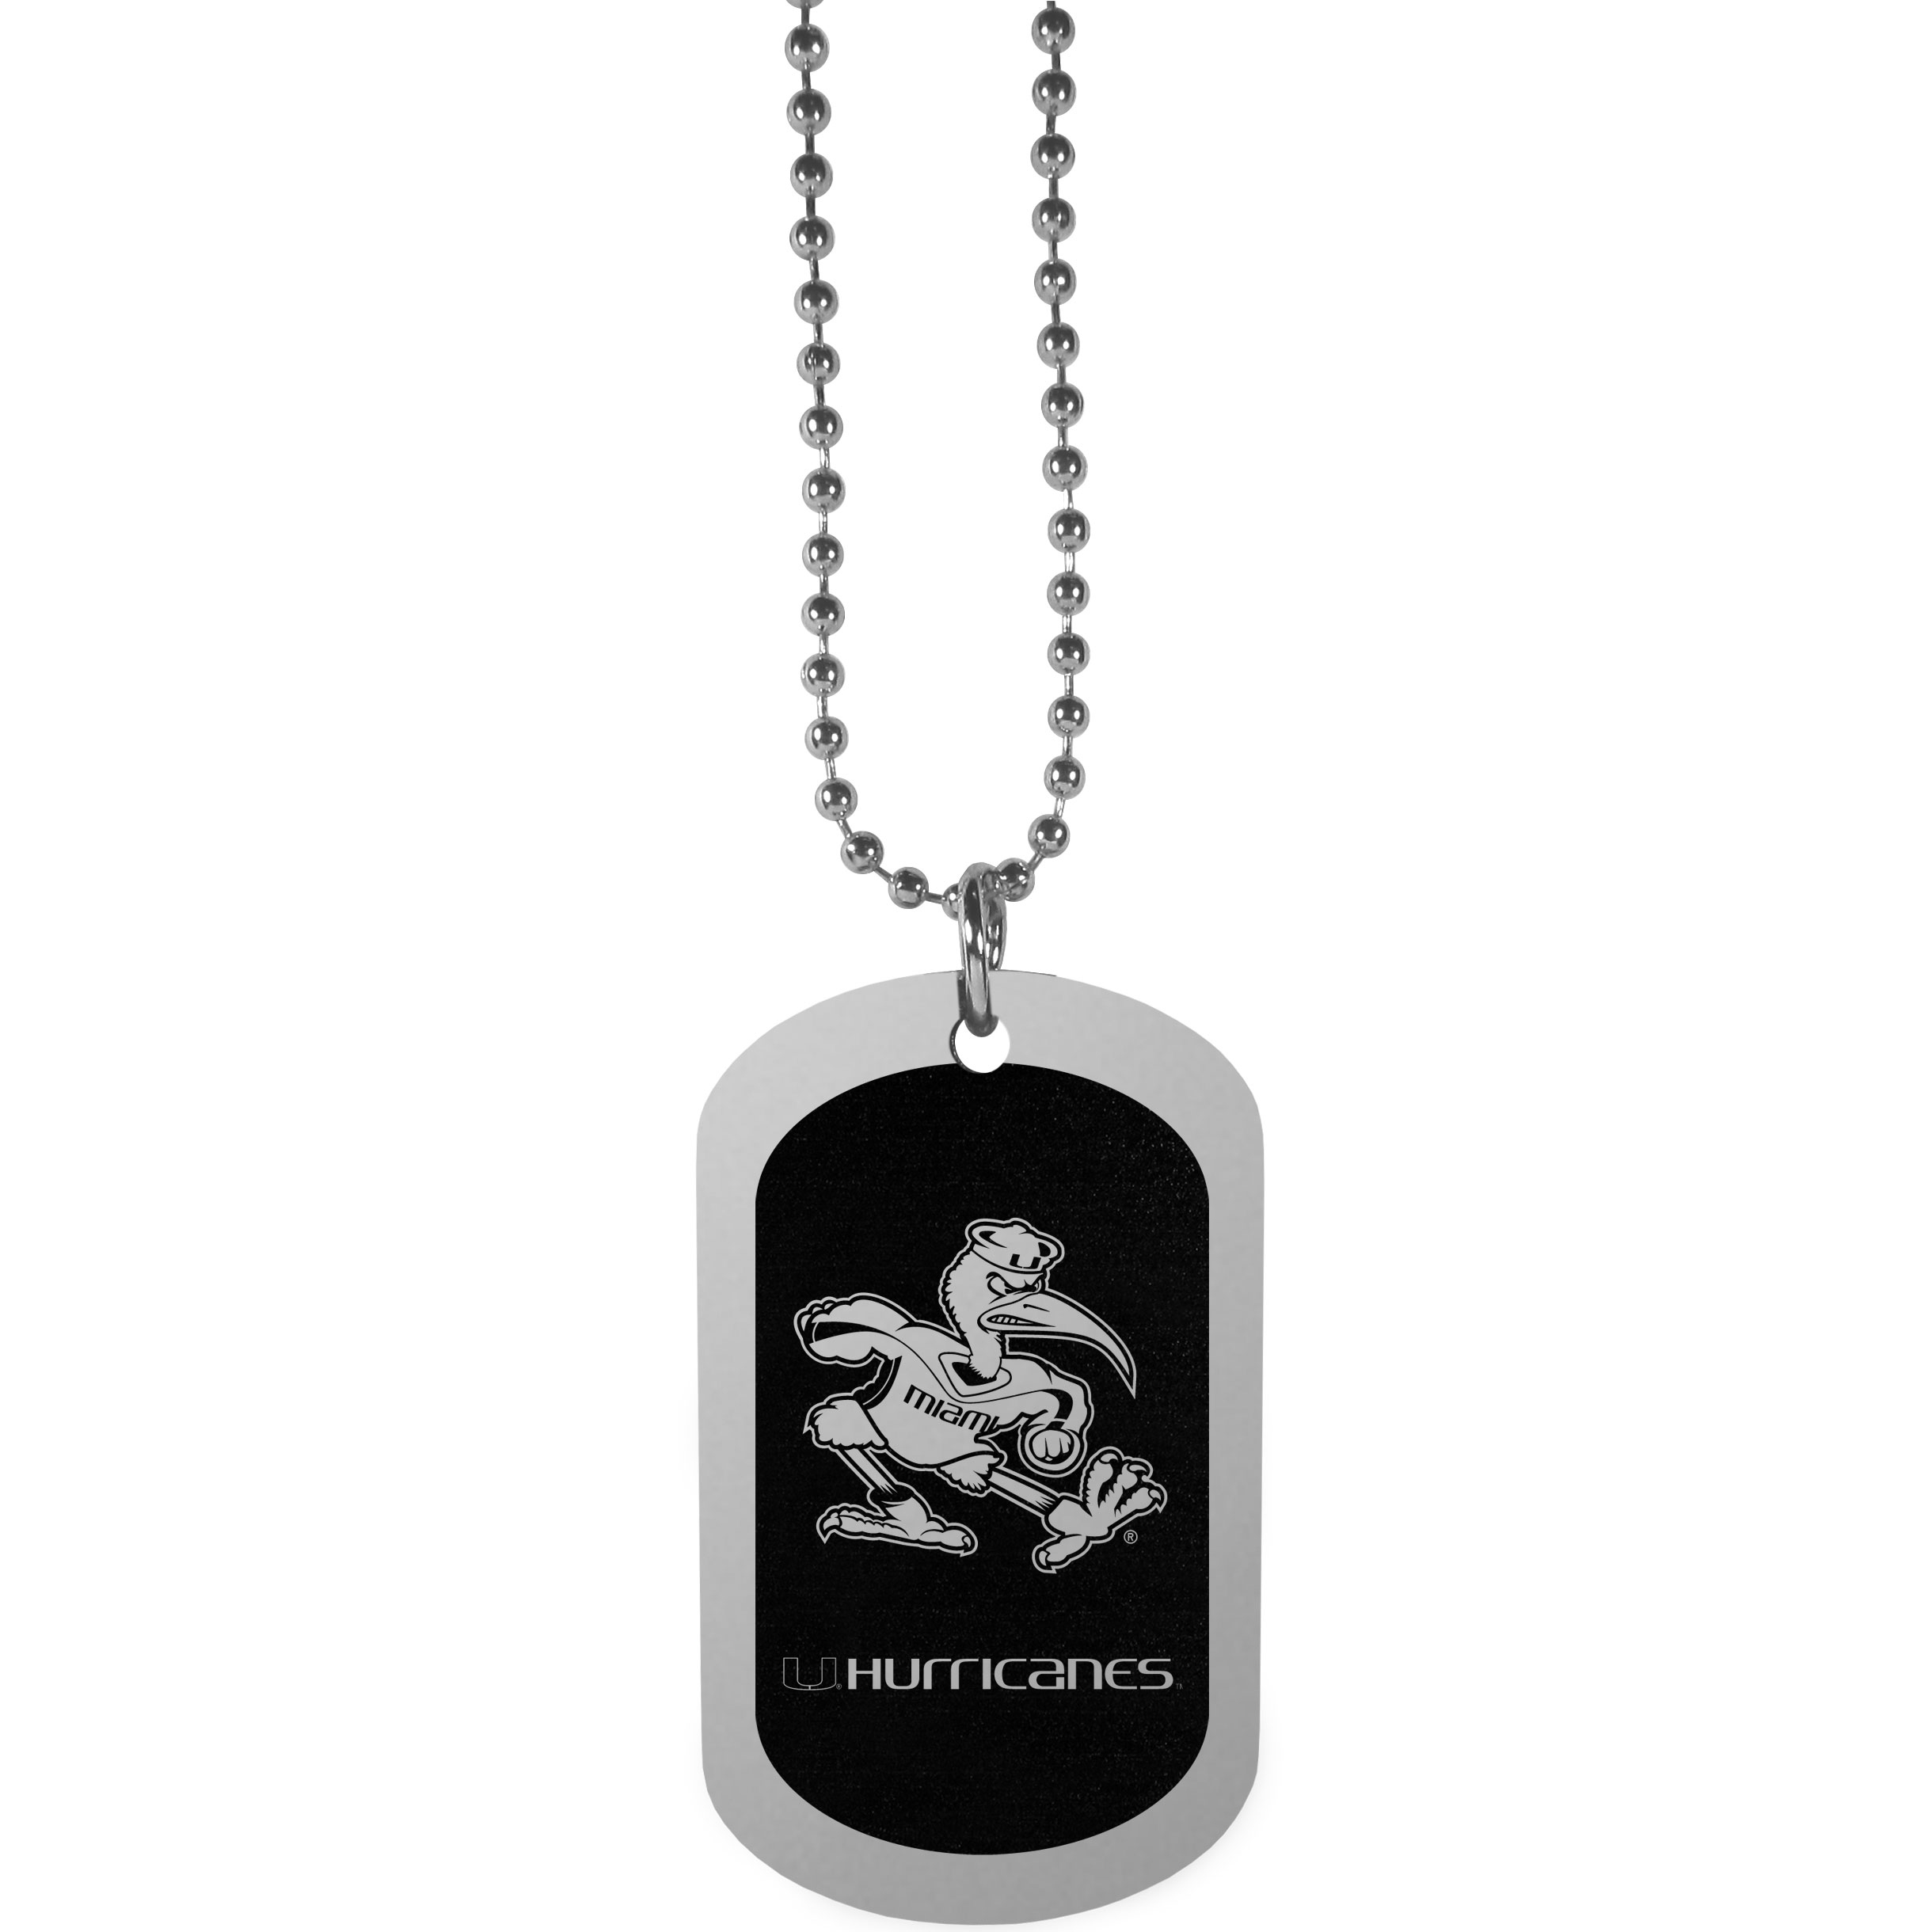 Miami Hurricanes Chrome Tag Necklace - Dog tag necklaces are a fashion statement that is here to stay. The sporty version of the classic tag features a black printed over a high polish tag to create a bold and sporty look. The tag comes on a 26 inch ball chain with a ball and joint clasp. Any Miami Hurricanes would be proud to wear this attractive fashion accessory.